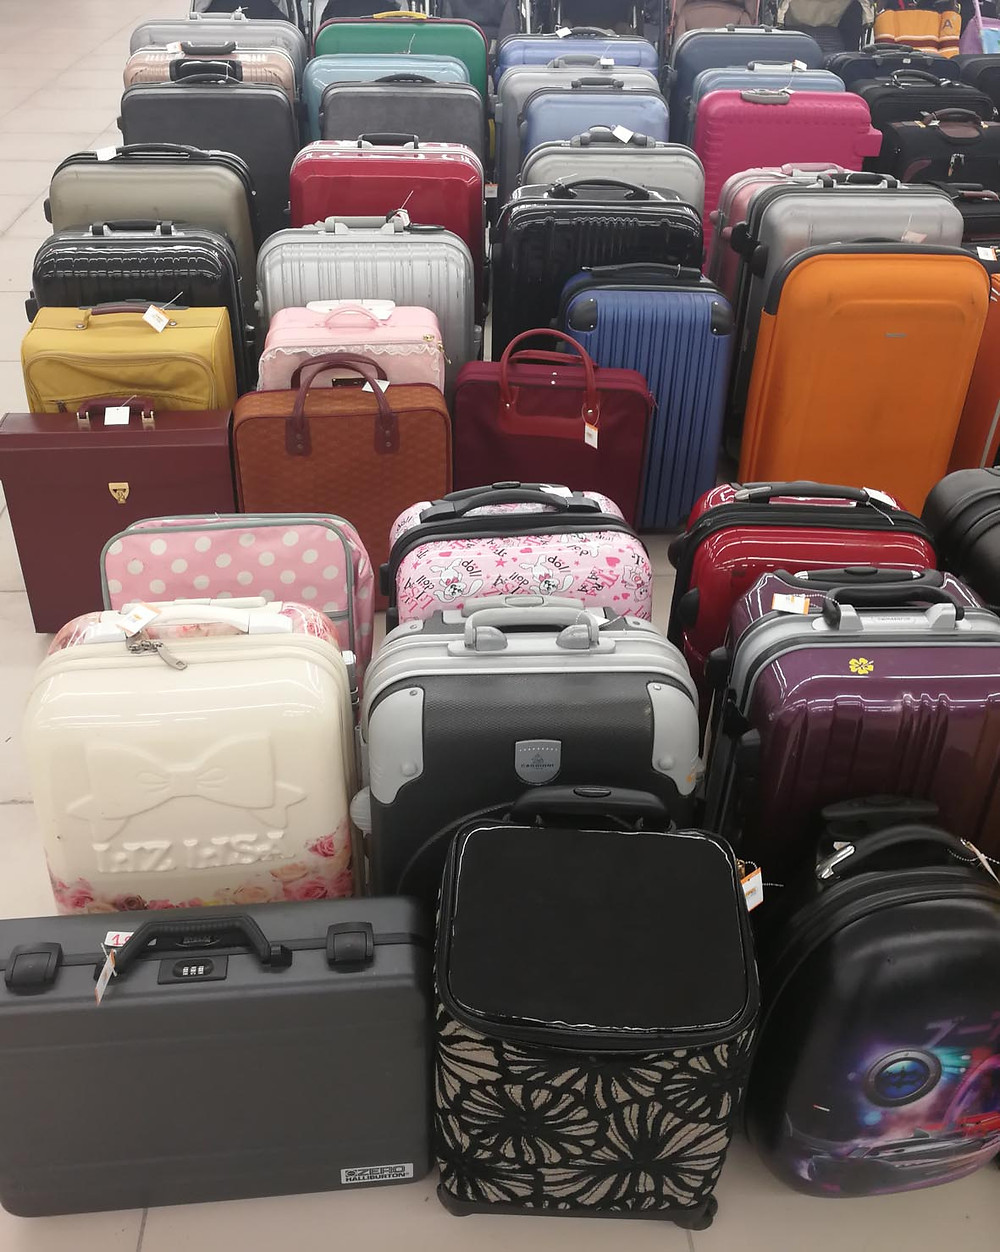 serembanonline photograph of luggage at jalan jalan japan at Centrepoint shopping centre by photographer Nic Falconer nicaliss